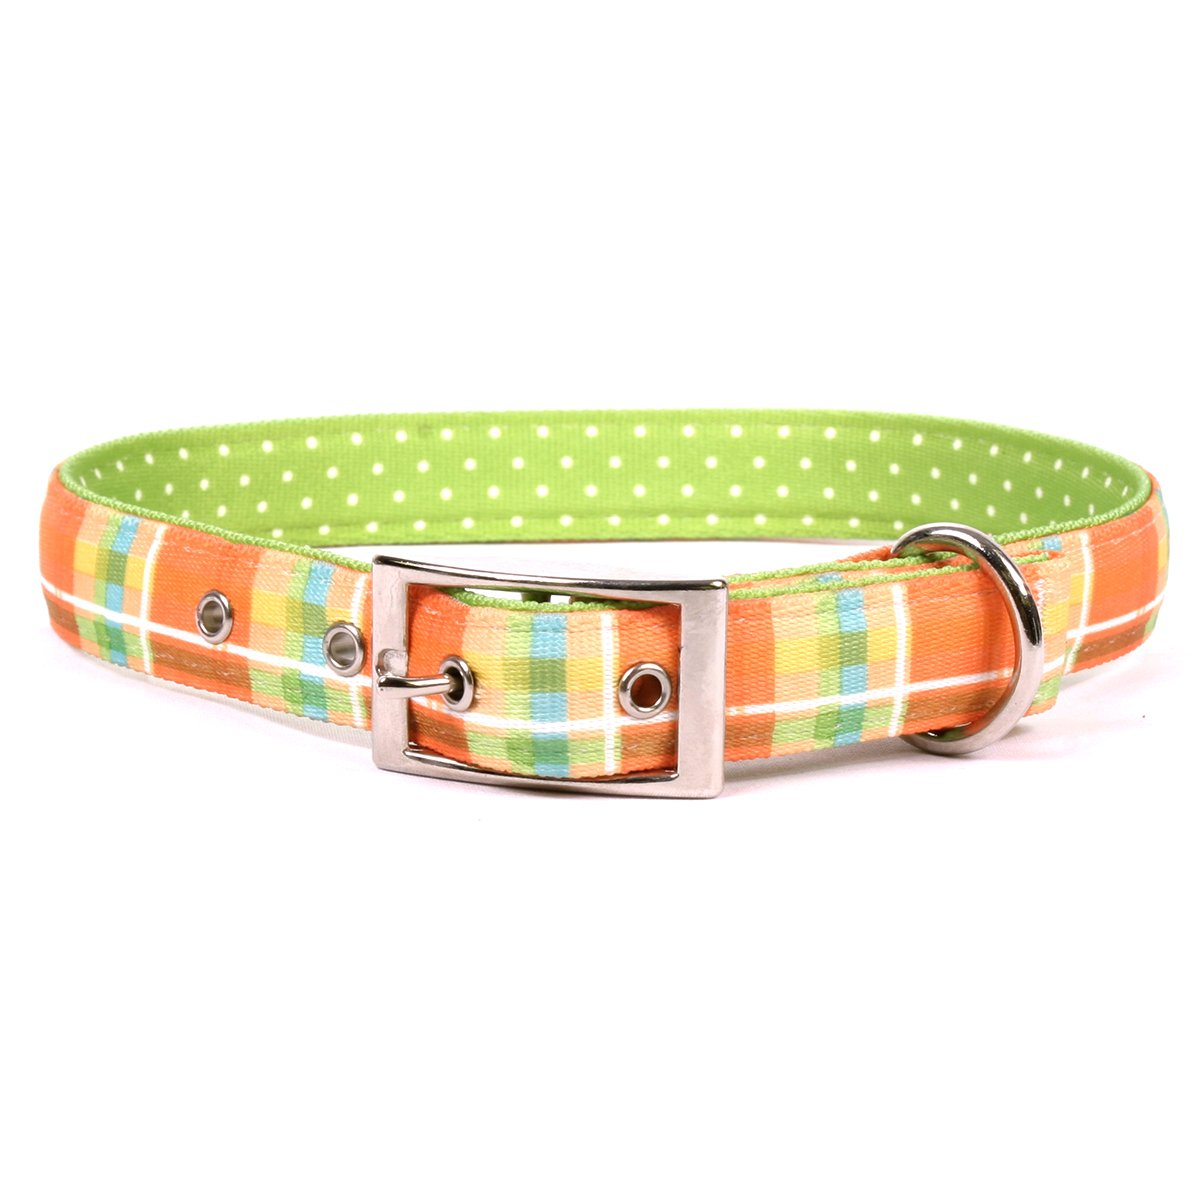 Yellow Dog Design Madras Orange Uptown Dog Collar, Small-3/4 Wide and fits Neck Sizes 11 to 14.5'' by Yellow Dog Design (Image #1)